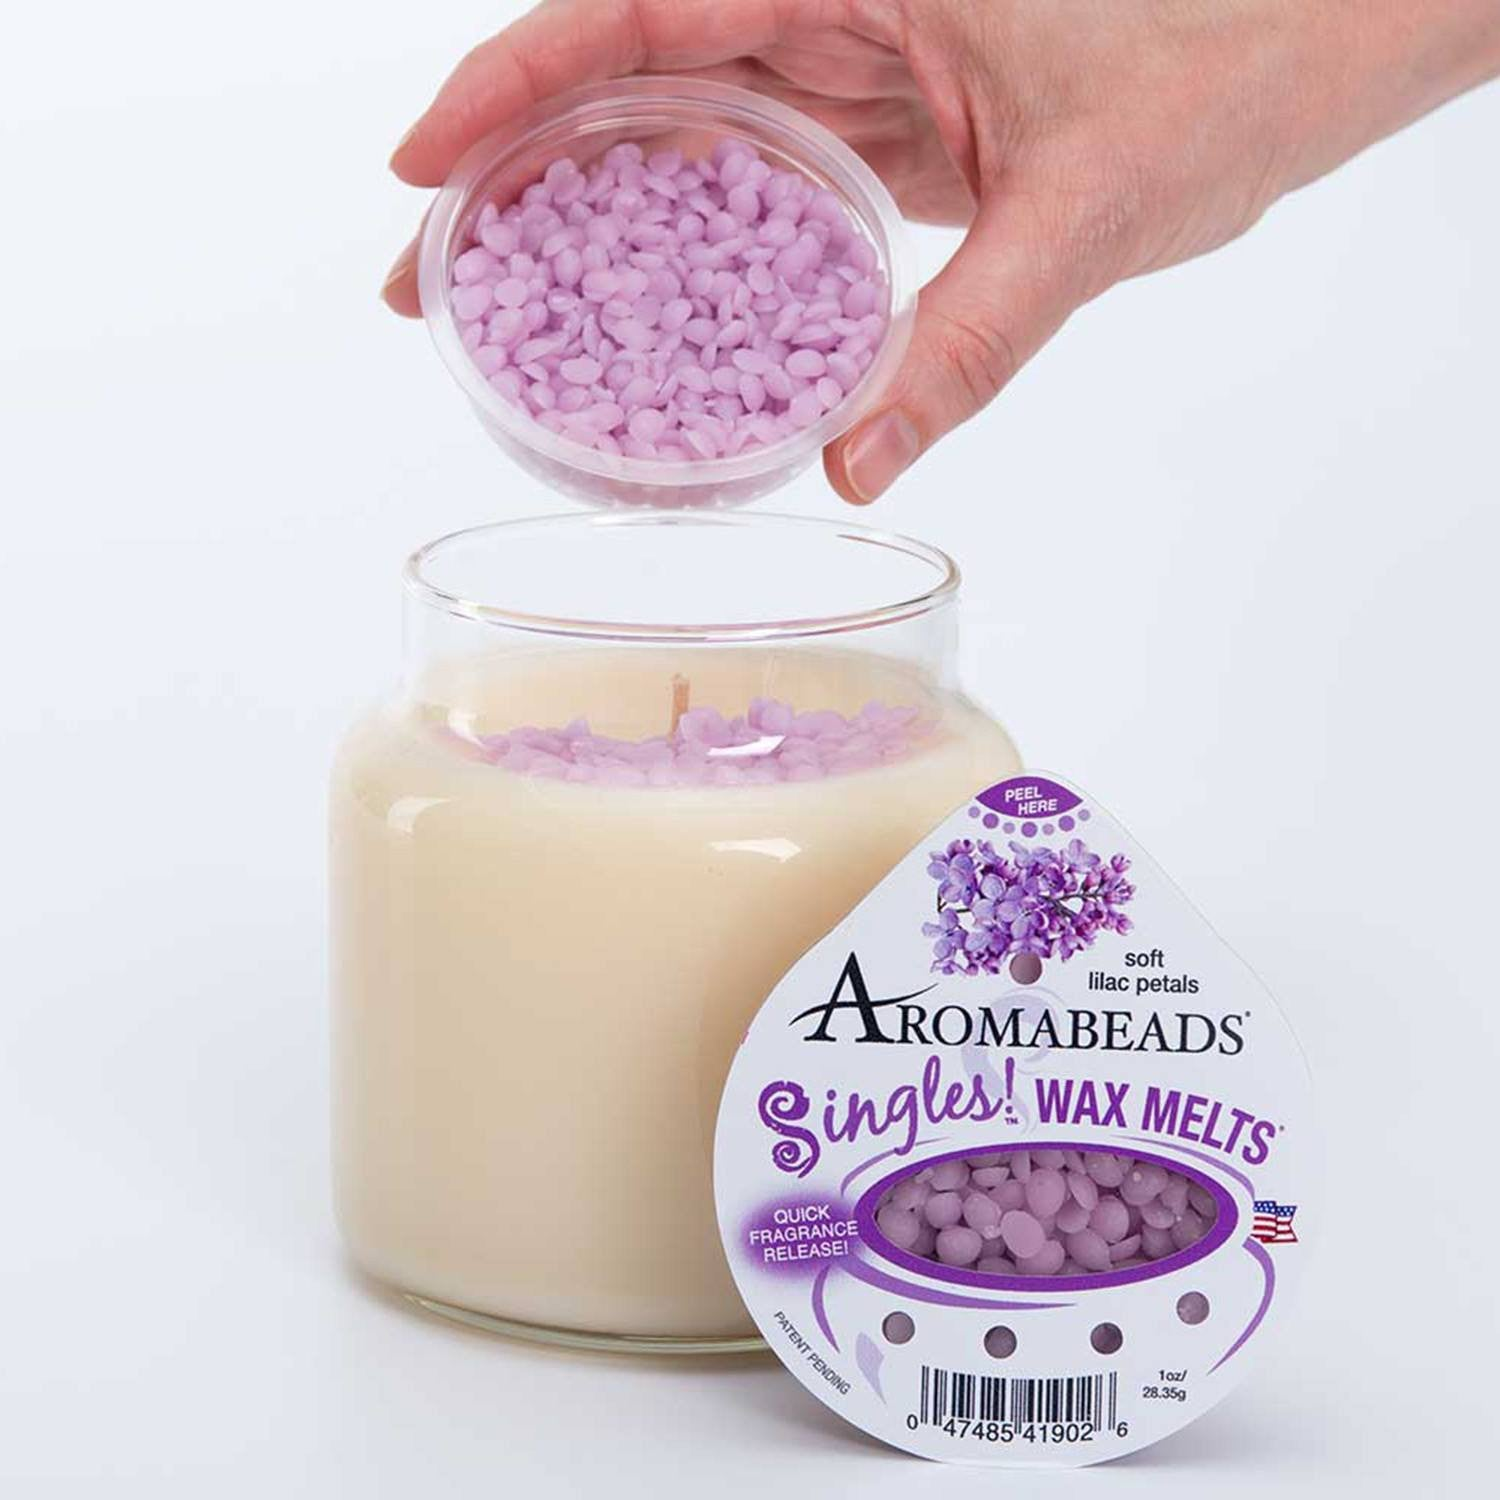 Aromabeads Singles Iced Cinnamon Buns Scented Wax Melts - Candlemart.com - 6